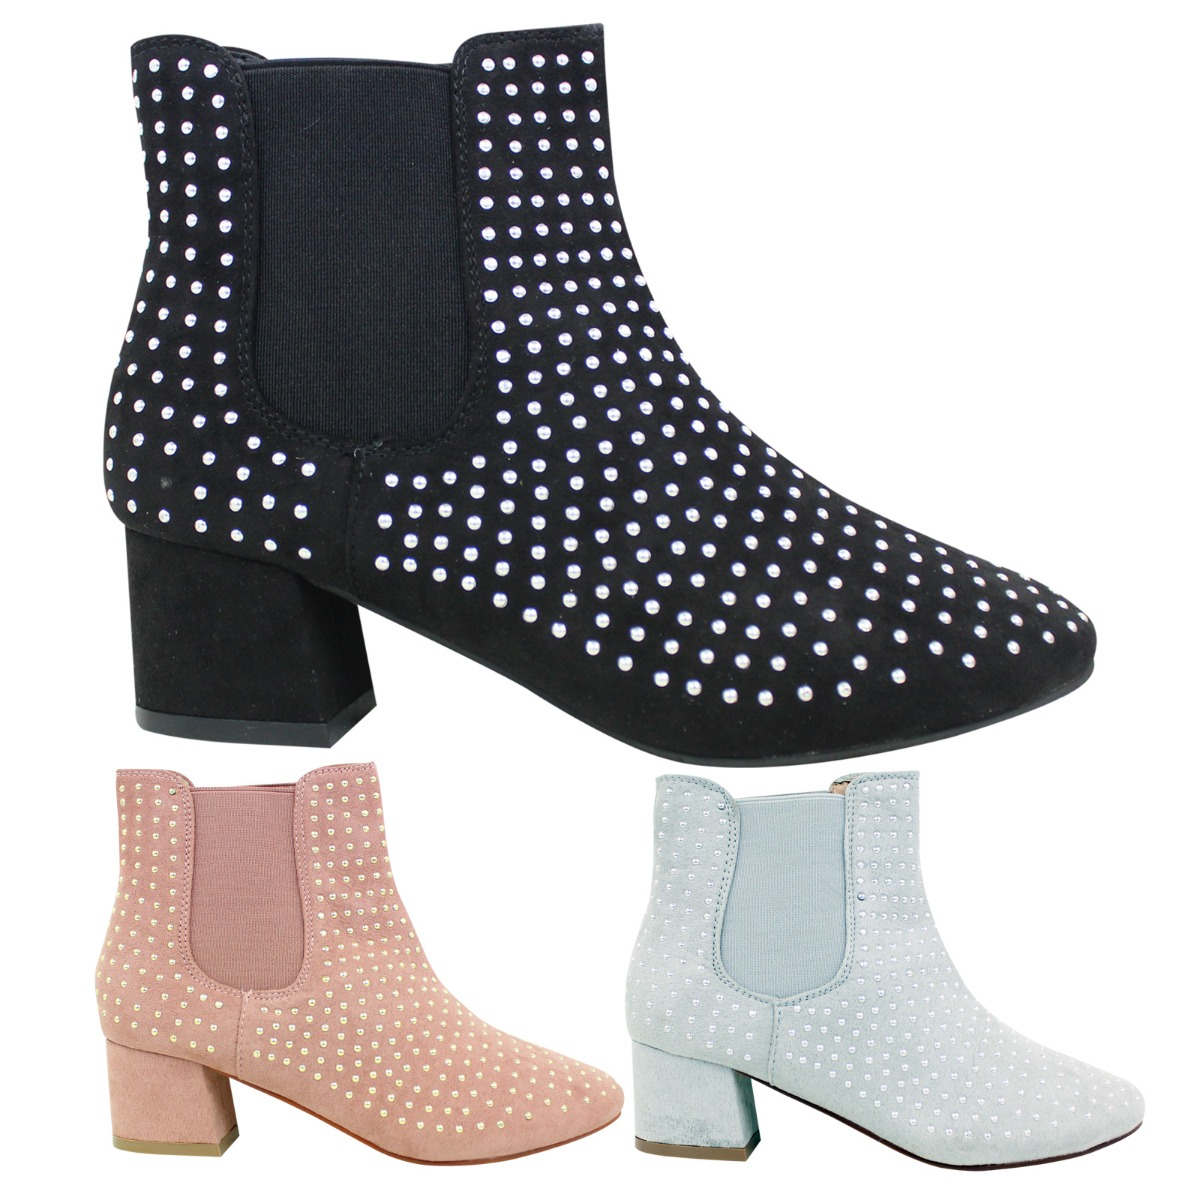 new arrival cheaper prevalent Details about Ladies Womens Chelsea Studded Ankle Boots Cowboy Slip On  Block Heel Size 3 - 9